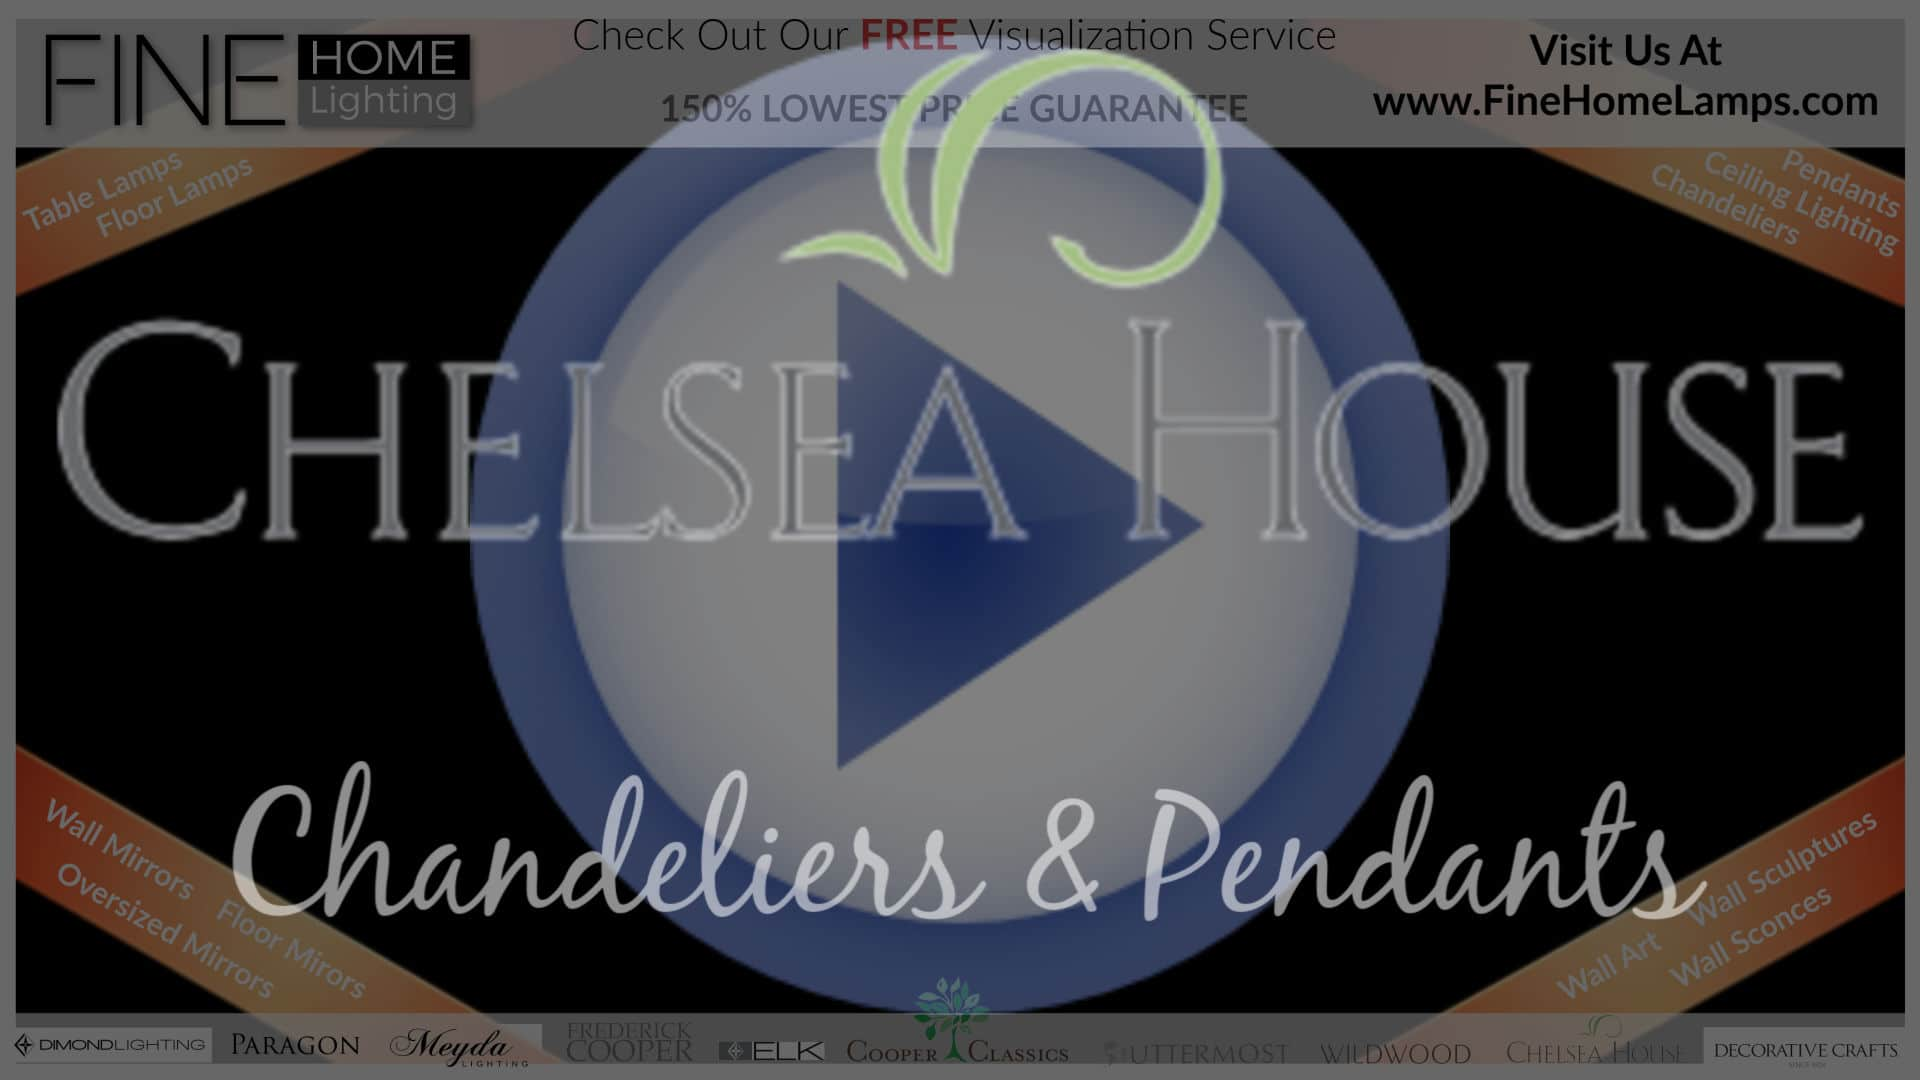 Chelsea-House-Chandeliers-Pendants-Thanks-for-watching-this-video-Get-an-additional-15-percent-off-your-next-purchase-Use-Coupon-Code-VIDEO